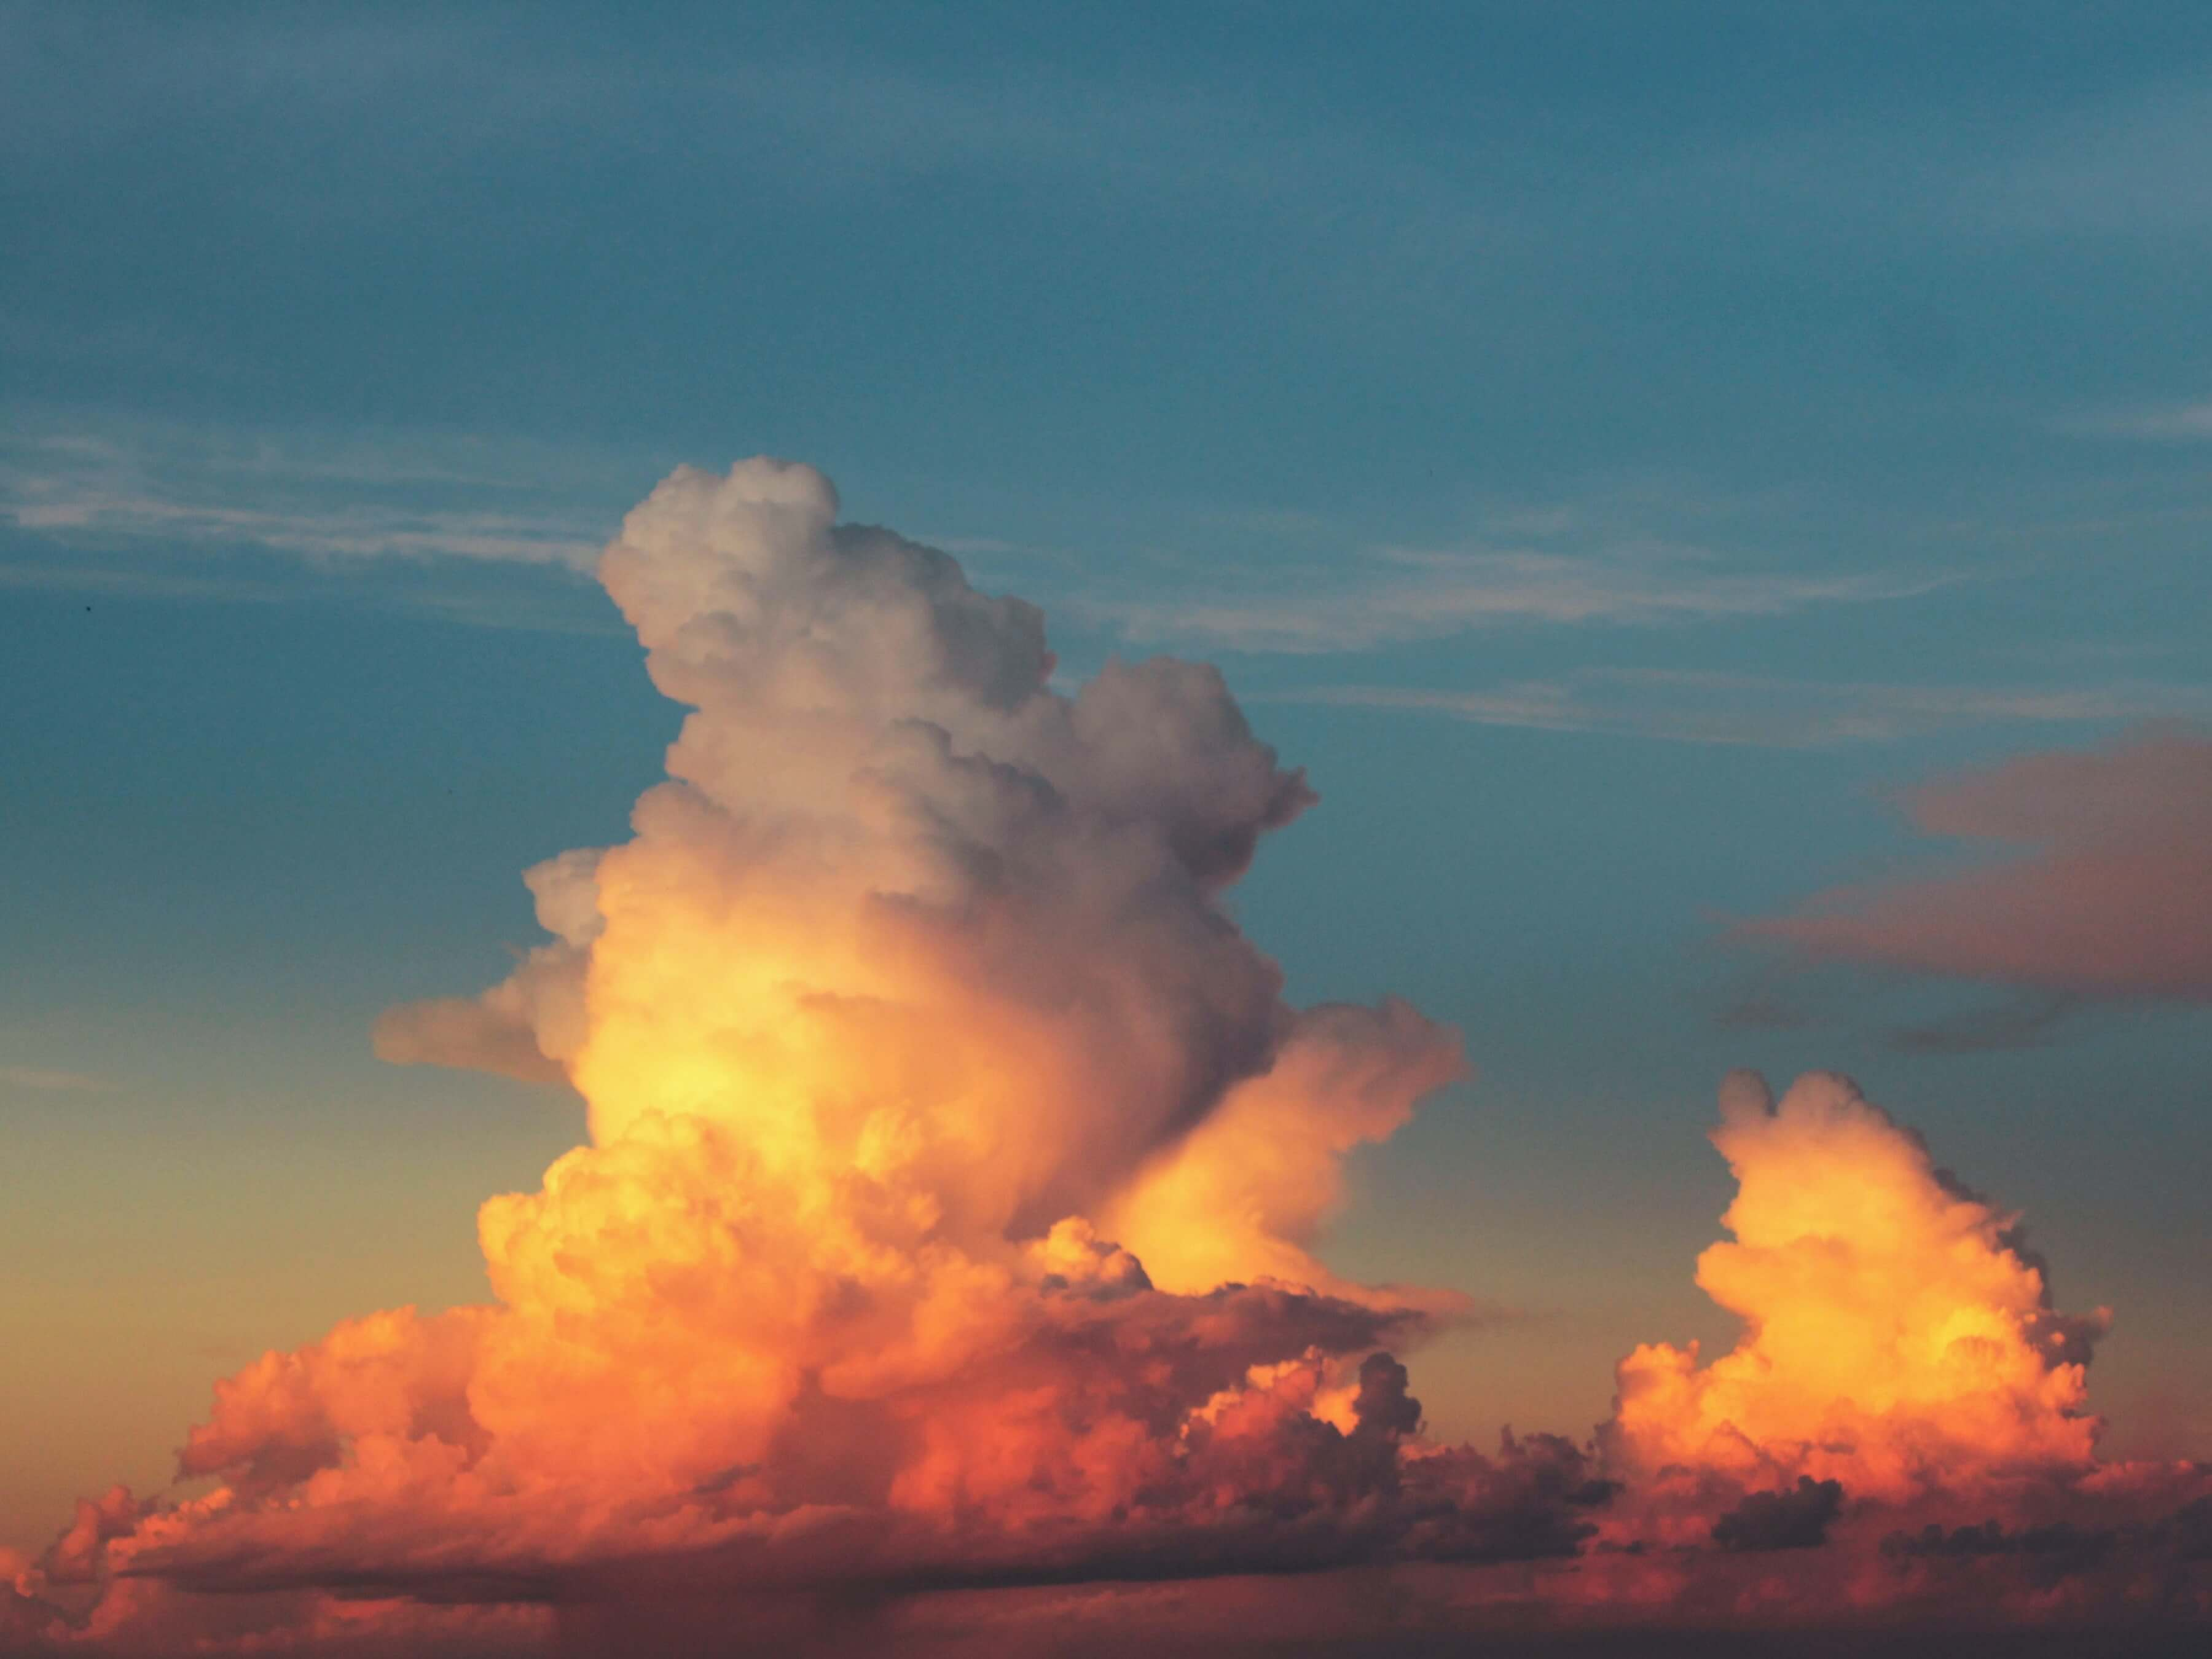 An orange cloud. Image credit: Raquel Pedrotti / Unsplash